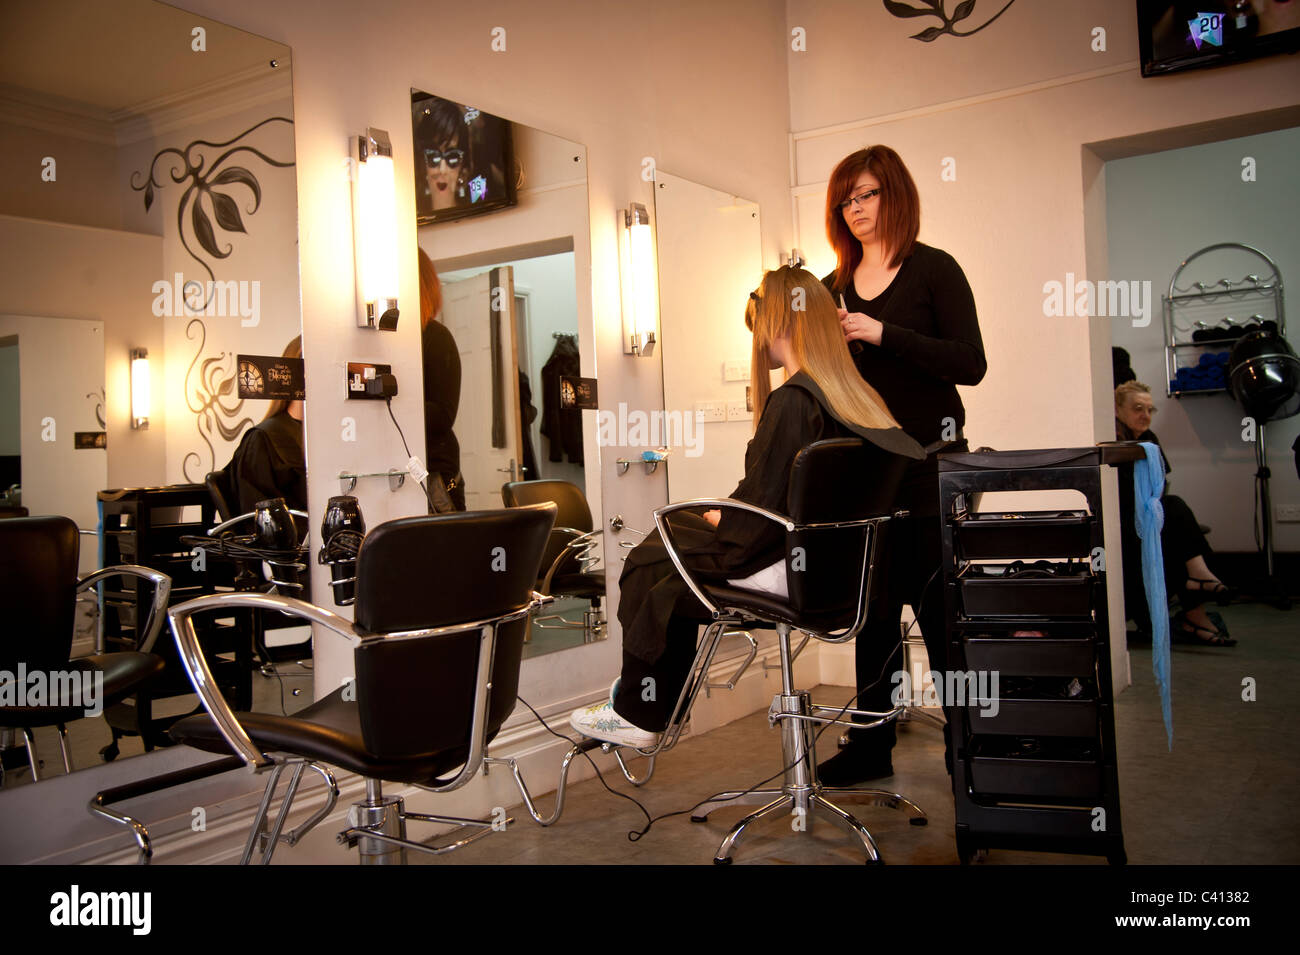 A young woman stylist cutting a teenage girl's hair in a hairdressing salon, UK - Stock Image